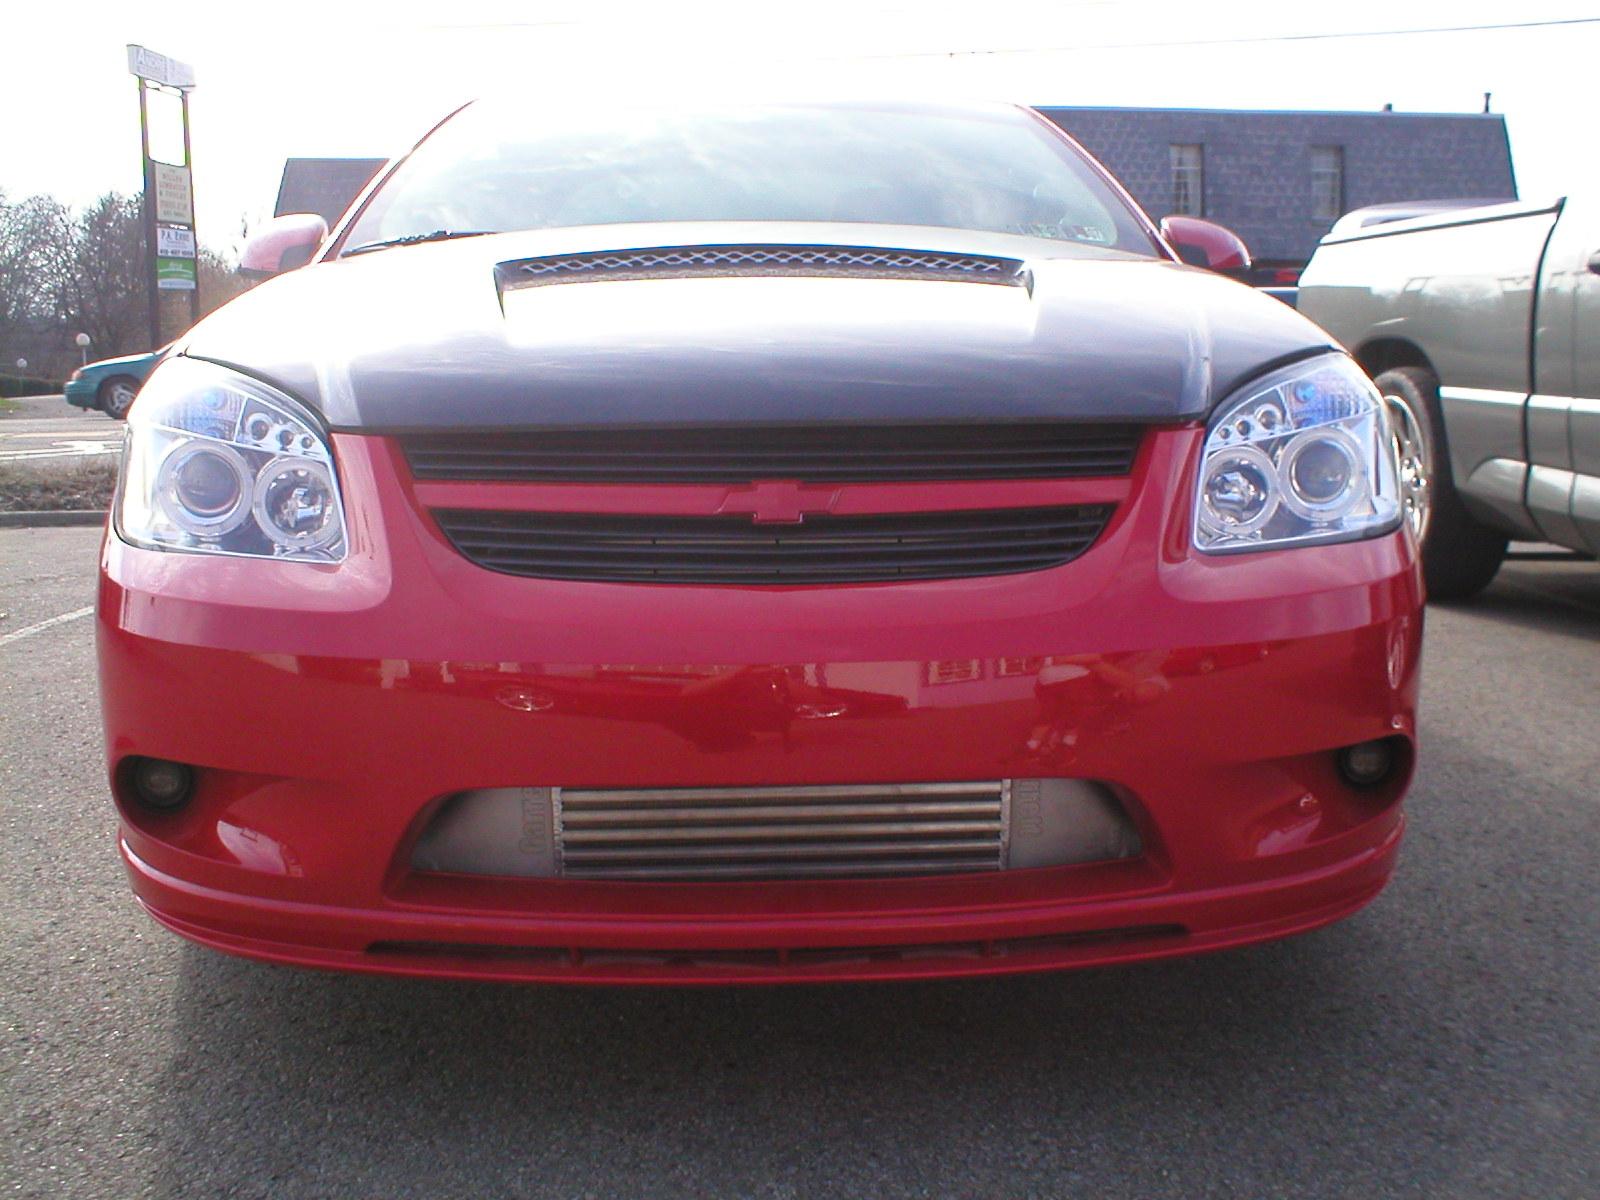 2006 Chevrolet Cobalt SS 2.4 coupe Turbocharged VVT